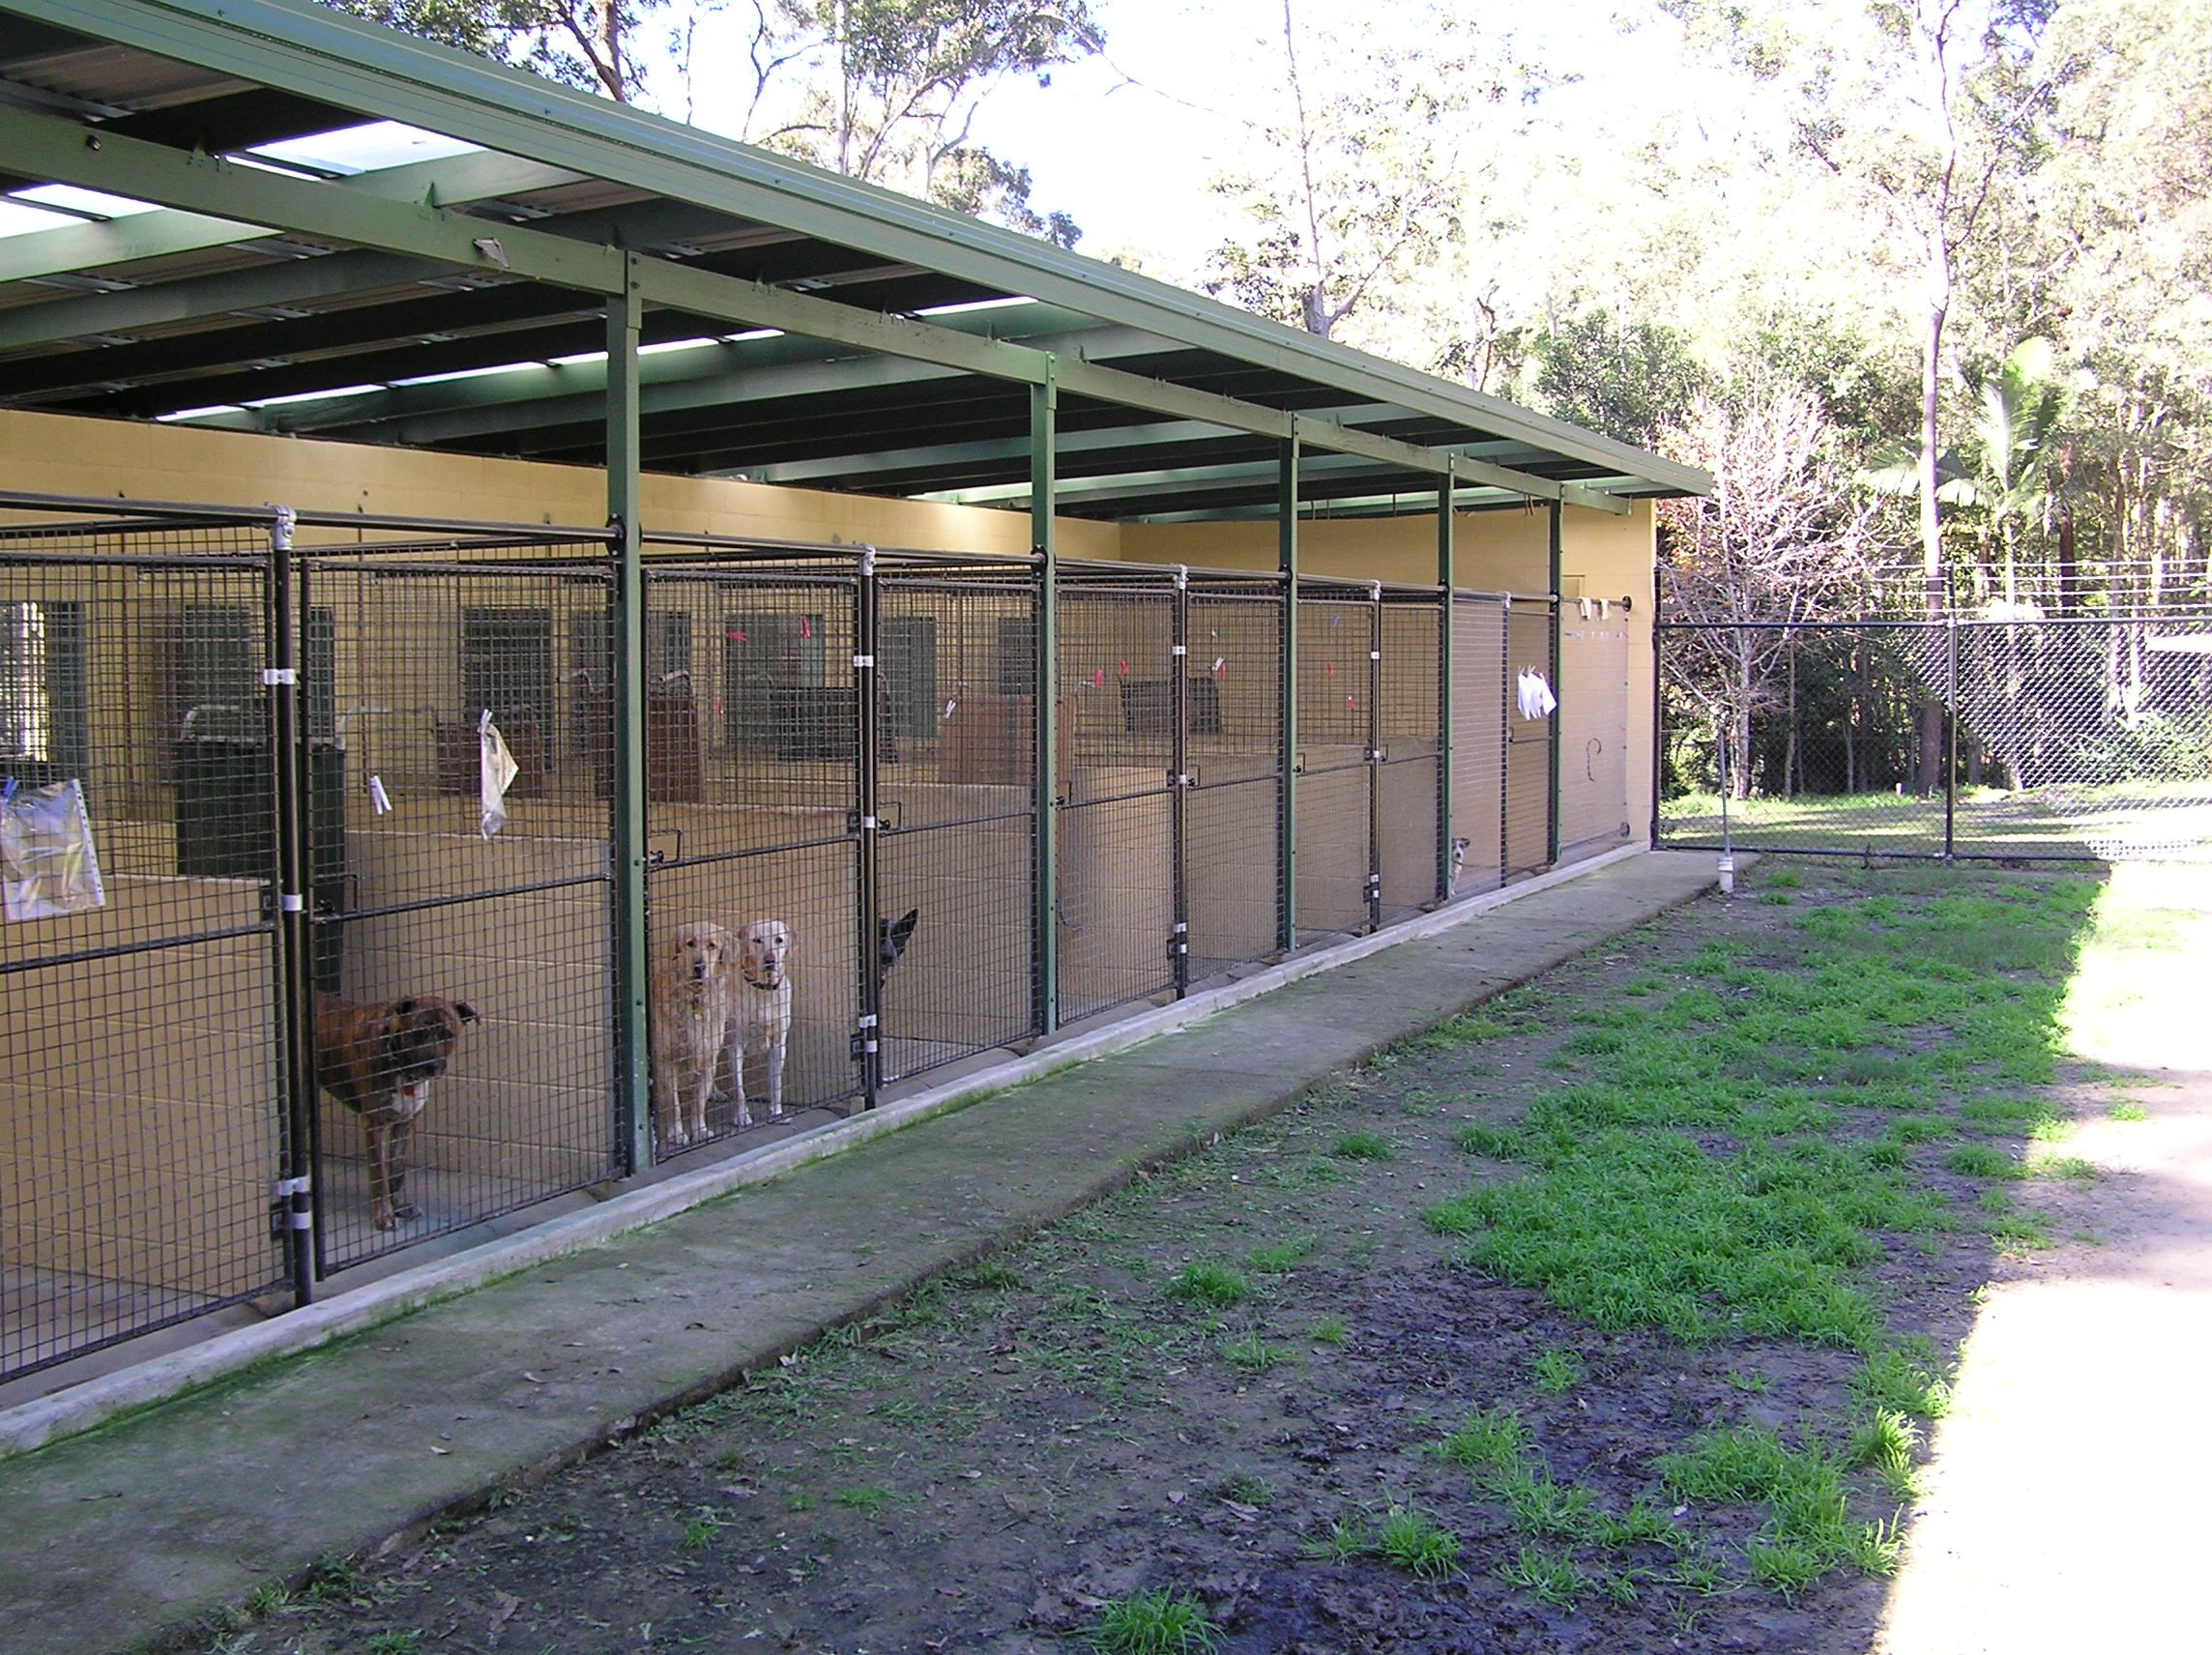 Dog Kennels Brisbane Stafford Boarding Kennel Dog Kennel Outdoor Dog Kennel Dog Boarding Kennels